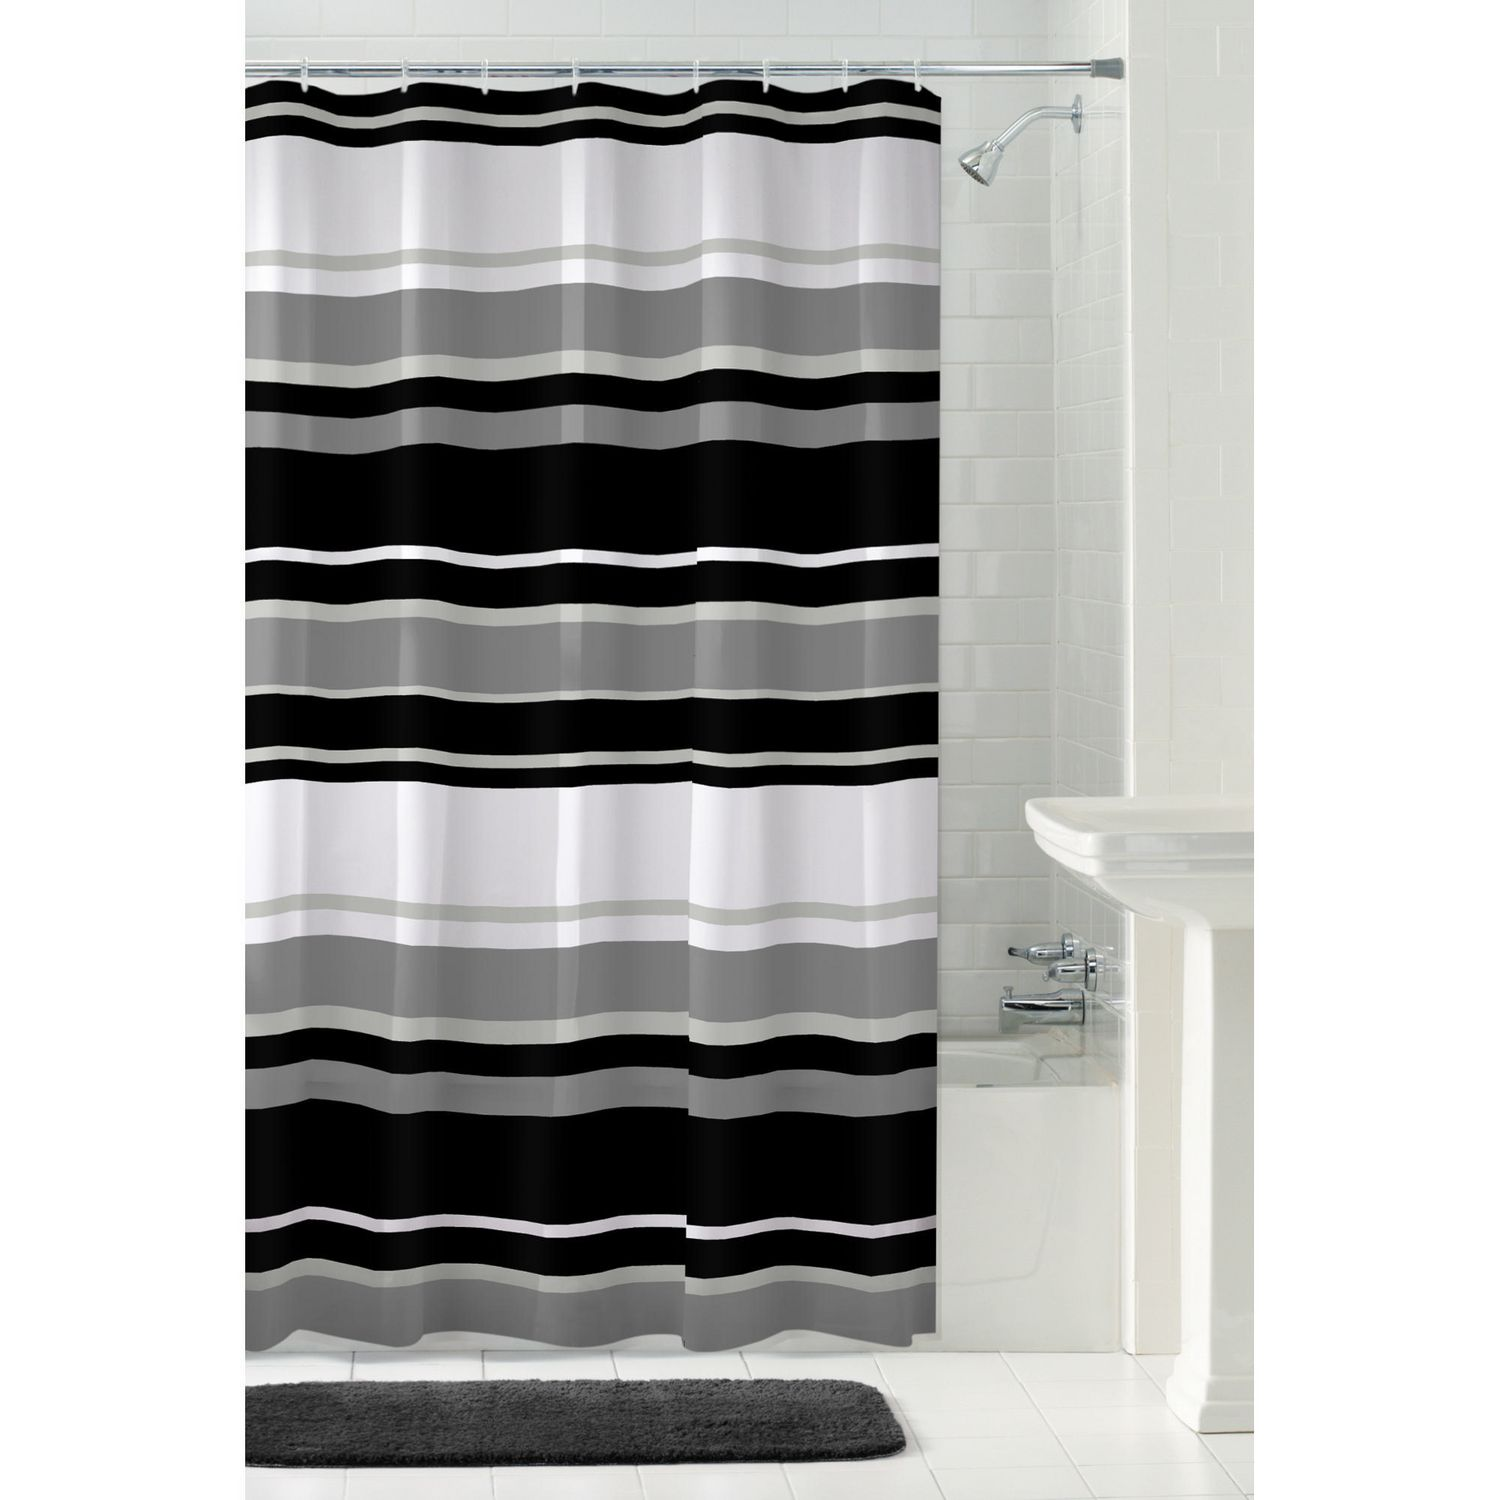 Mainstays Peva James Stripe Shower Curtain Or Liner 70 Inches X 72 Inches Black